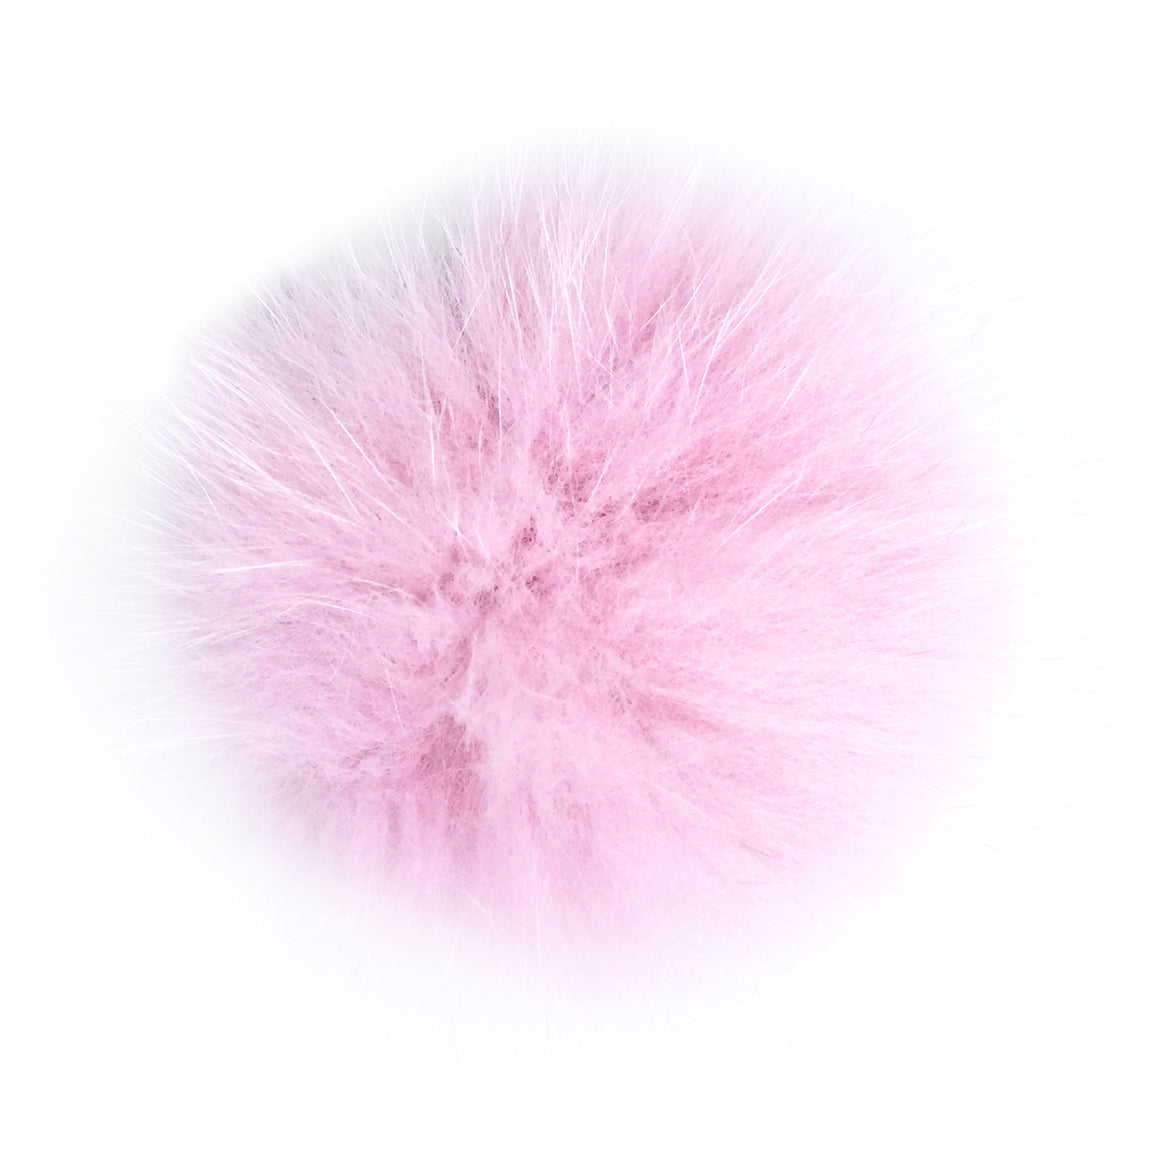 Expedition Earflap Pom Pom Hat | Rose Baby Alpaca | Fur Pom Pom